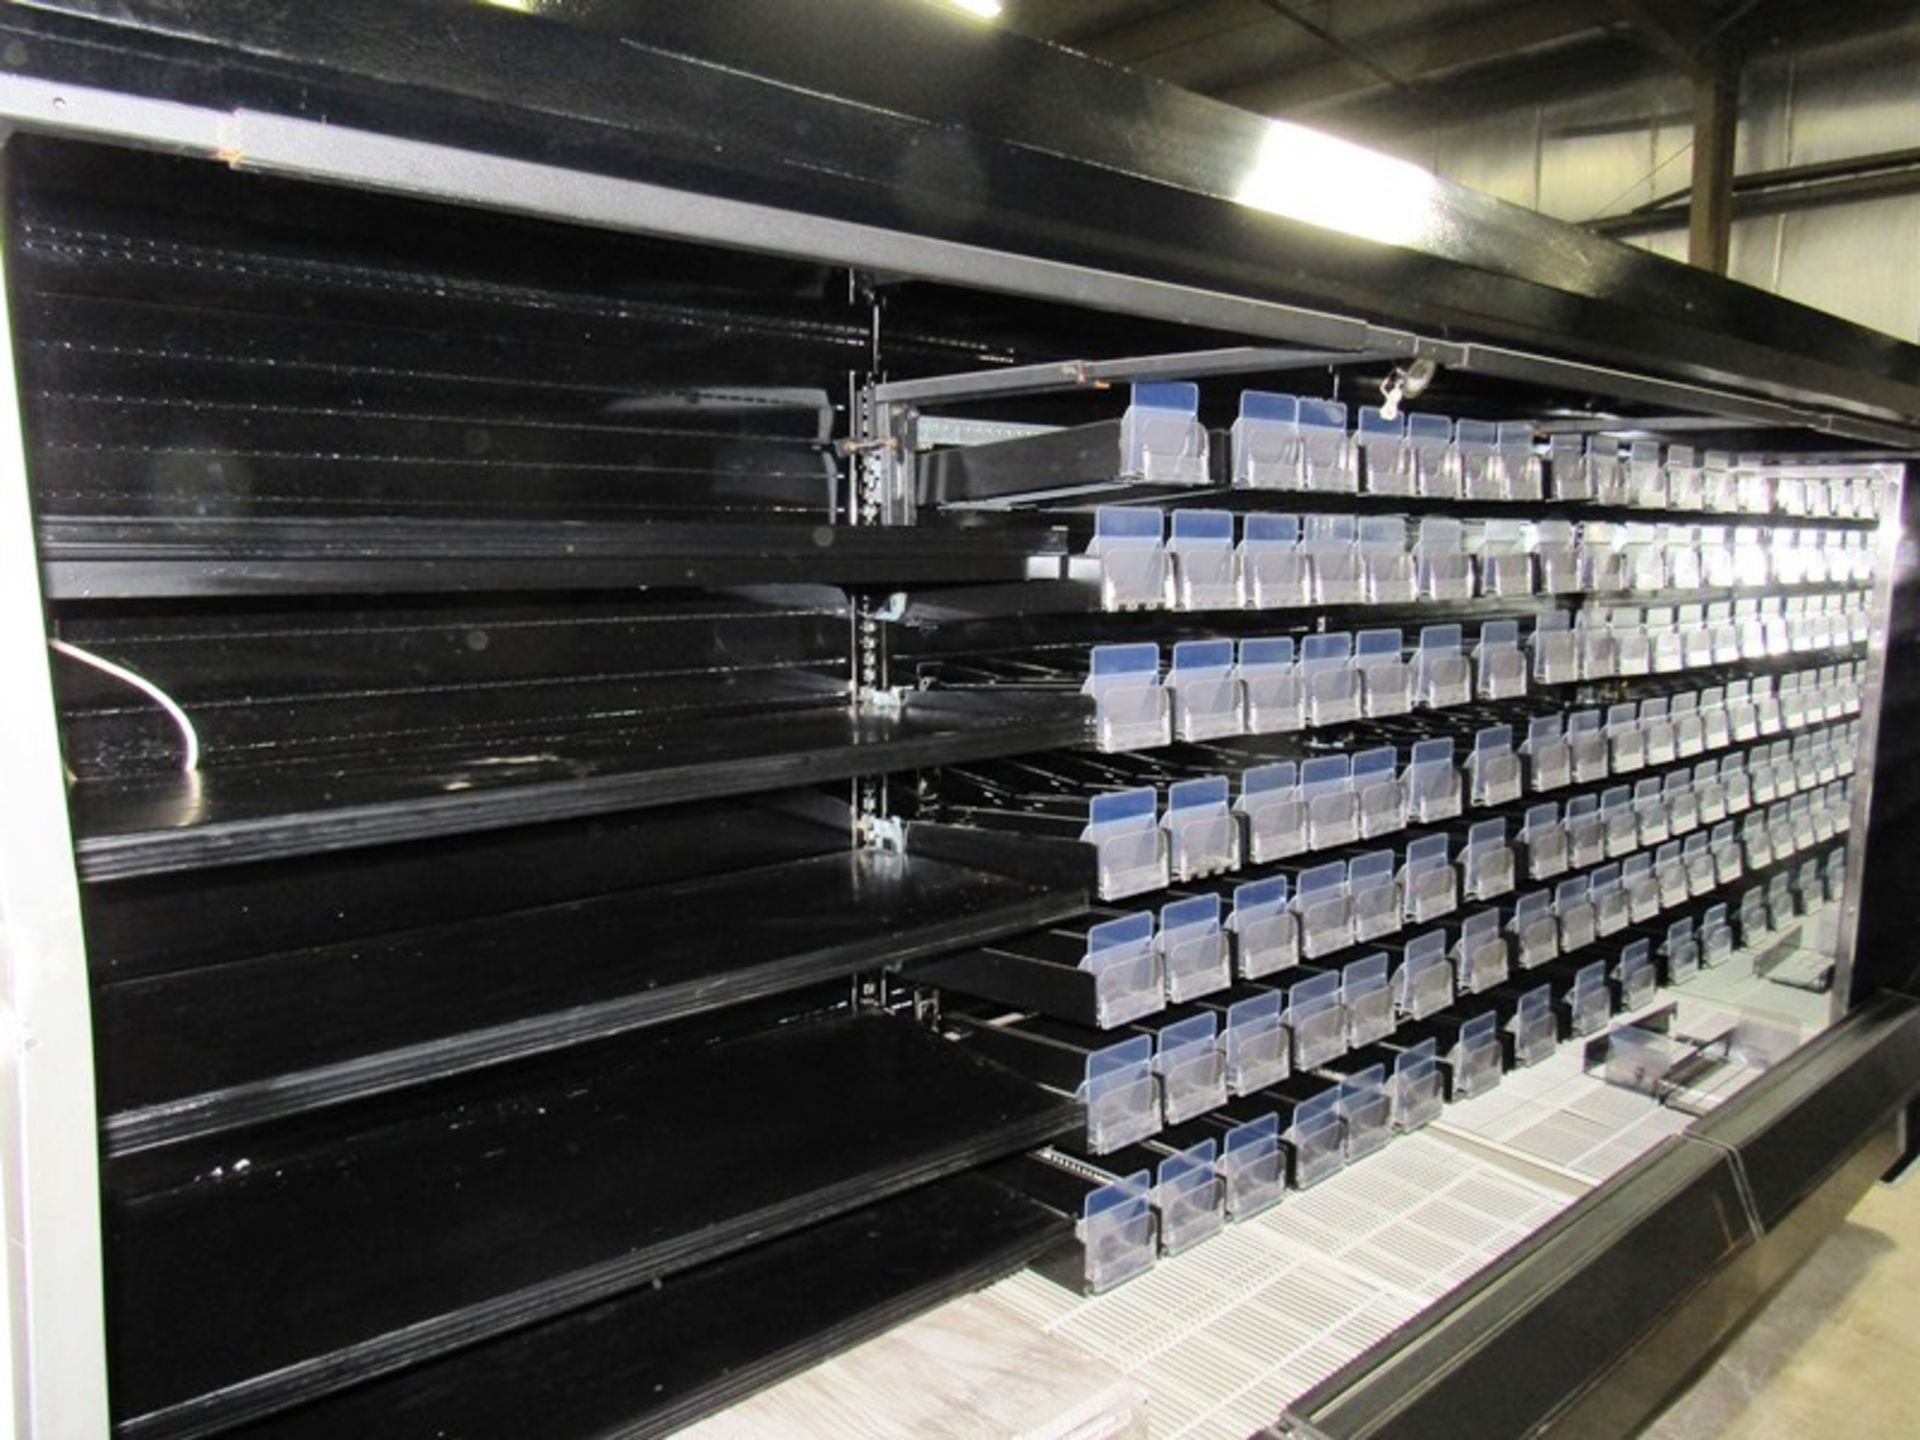 Hussman Refrigerated Reach-In Cooler, 12' long with lights, spring loaded compartments & shelves - Image 2 of 4